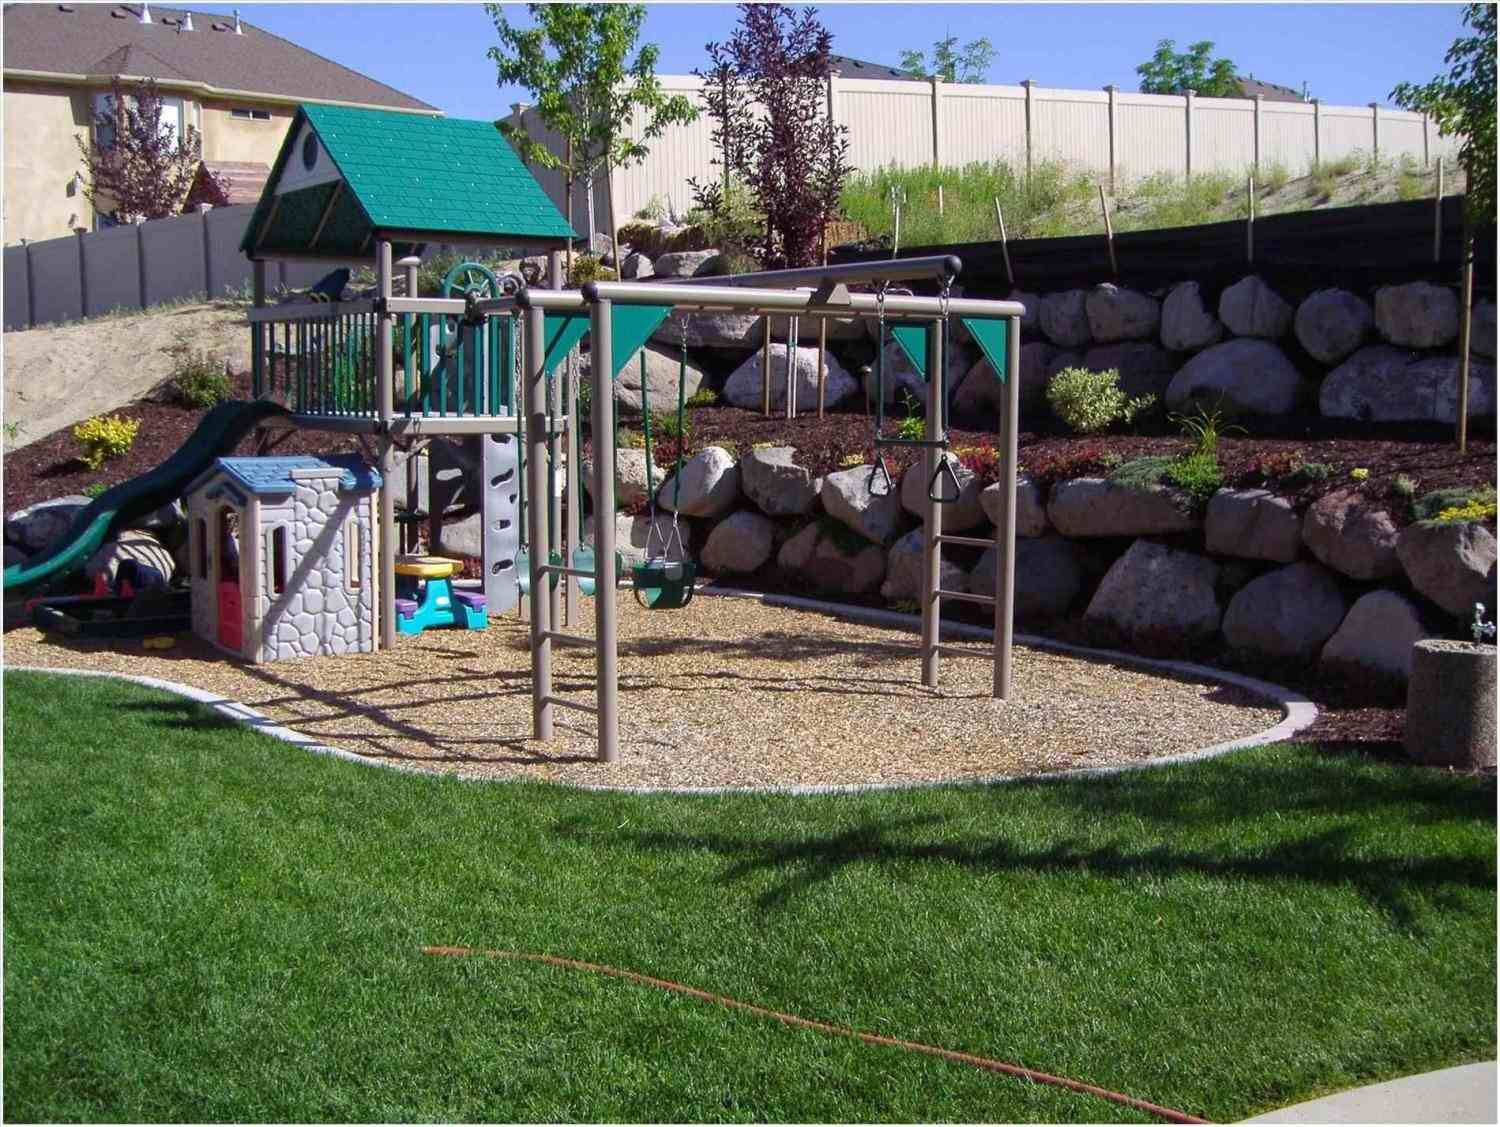 Backyard Ideas On A Budget Archdsgnrharchitecturedsgncom within 14 Genius Concepts of How to Improve Kid Friendly Backyard Ideas On A Budget